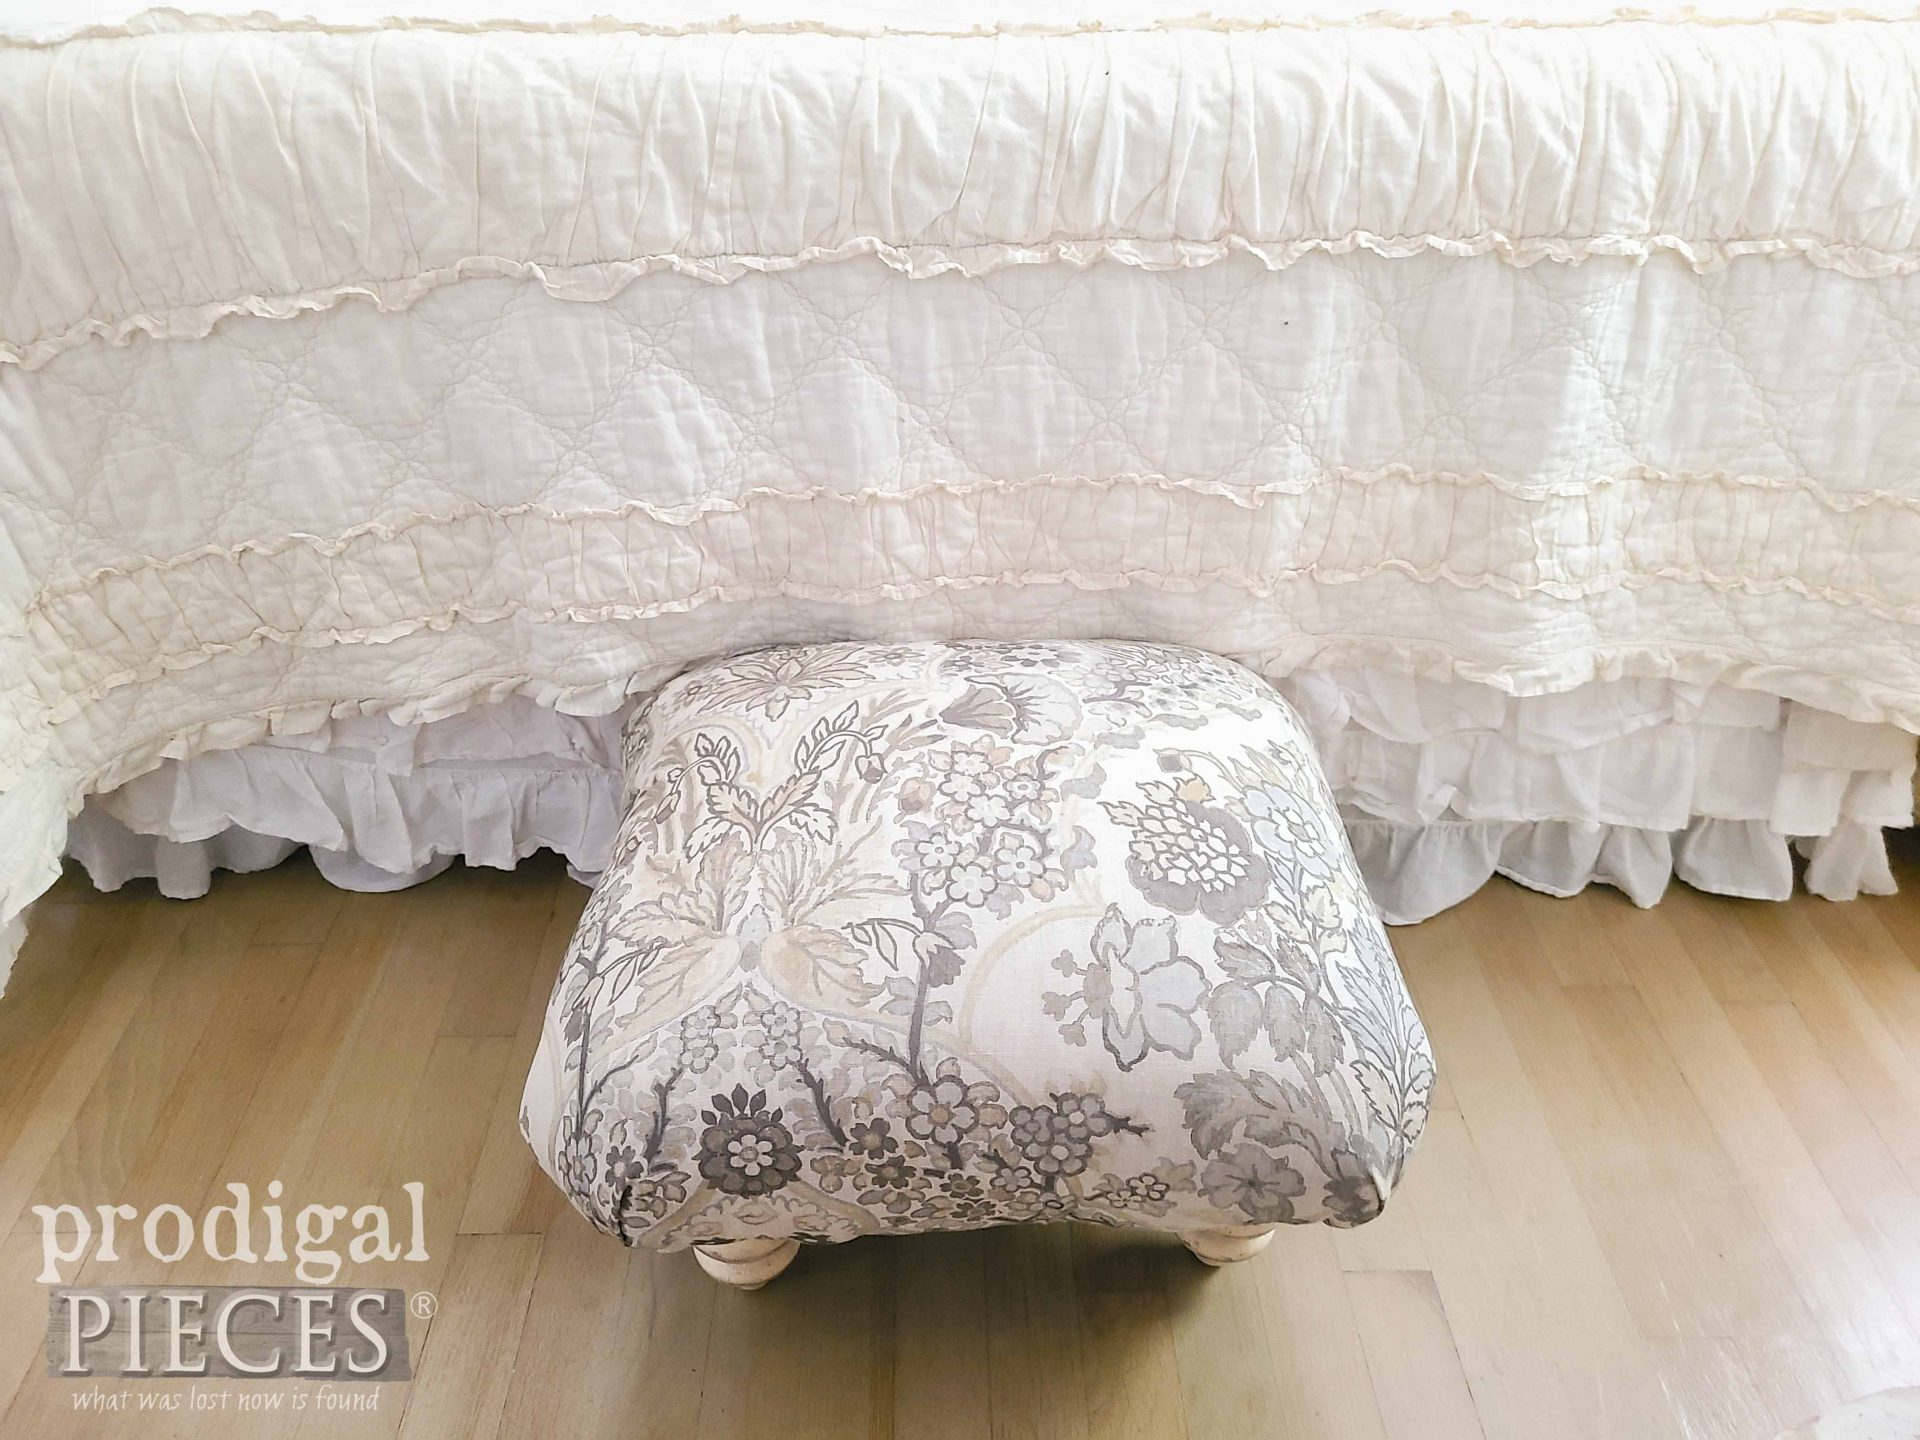 Top View of Upcycled Ottoman Handmade by Larissa of Prodigal Pieces | prodigalpieces.com #prodigalpieces #upcycled #furniture